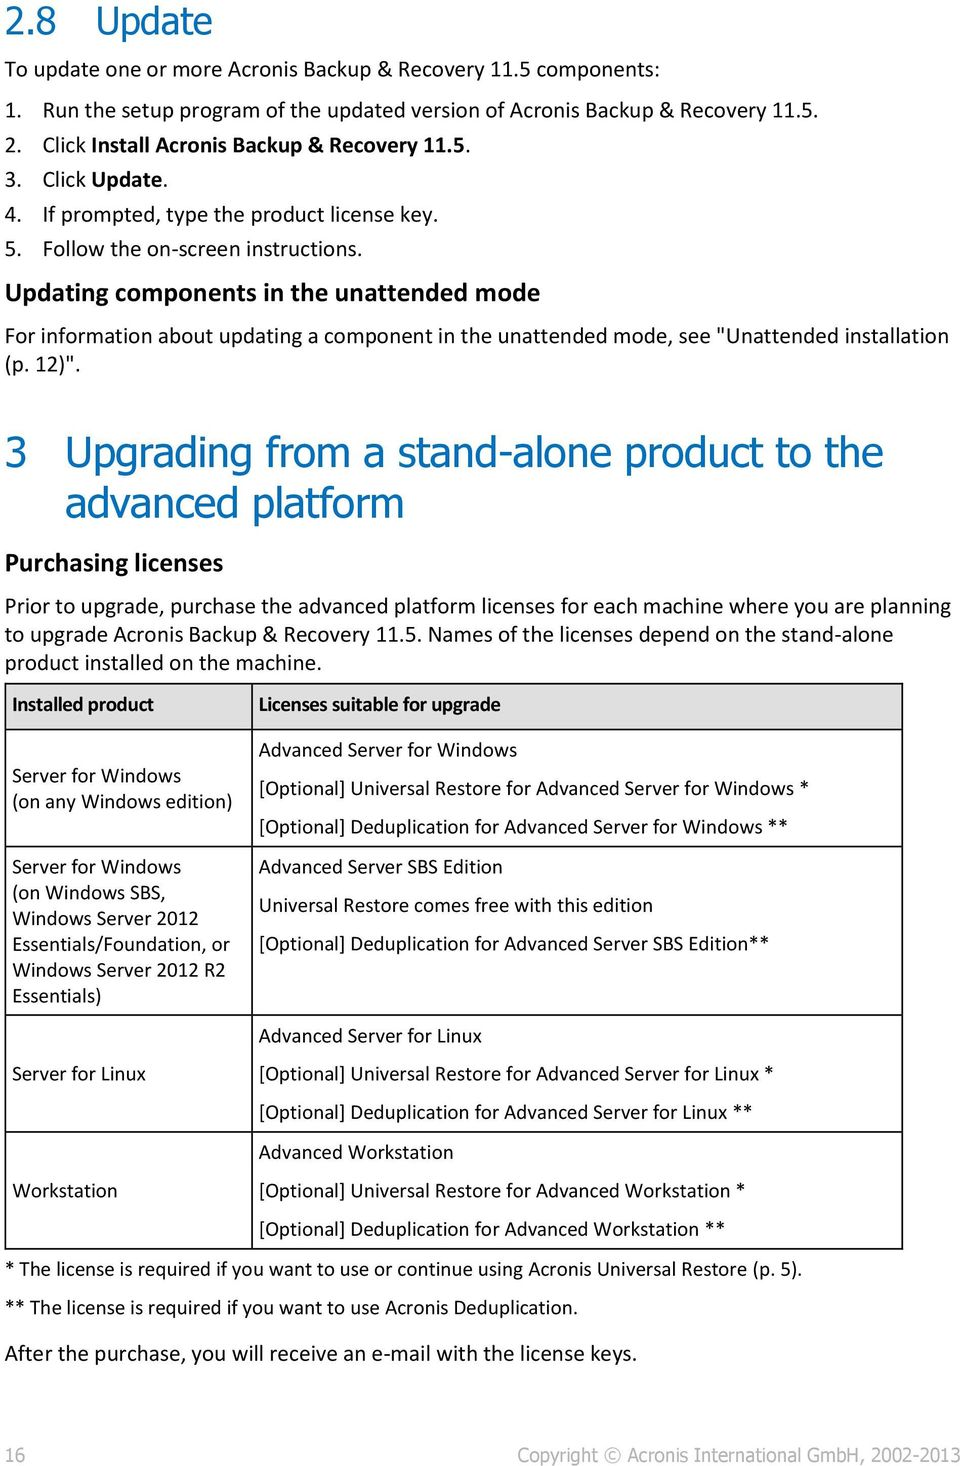 "Updating components in the unattended mode For information about updating a component in the unattended mode, see ""Unattended installation (p. 12)""."